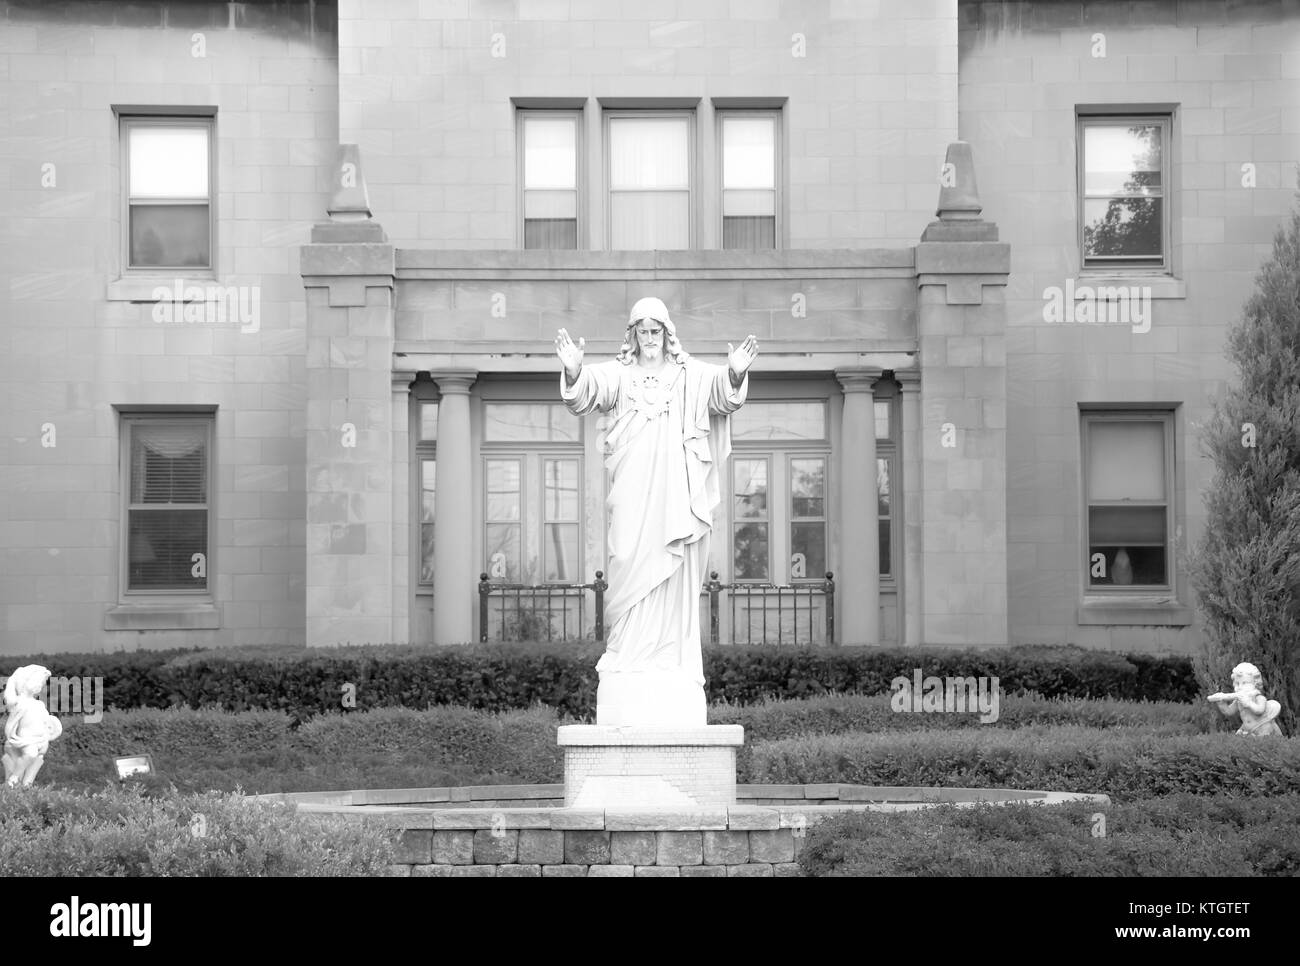 Black and white stock photo of marble statue of Jesus Christ in courtyard at the Church of St. Stanislaus Bishop - Stock Image